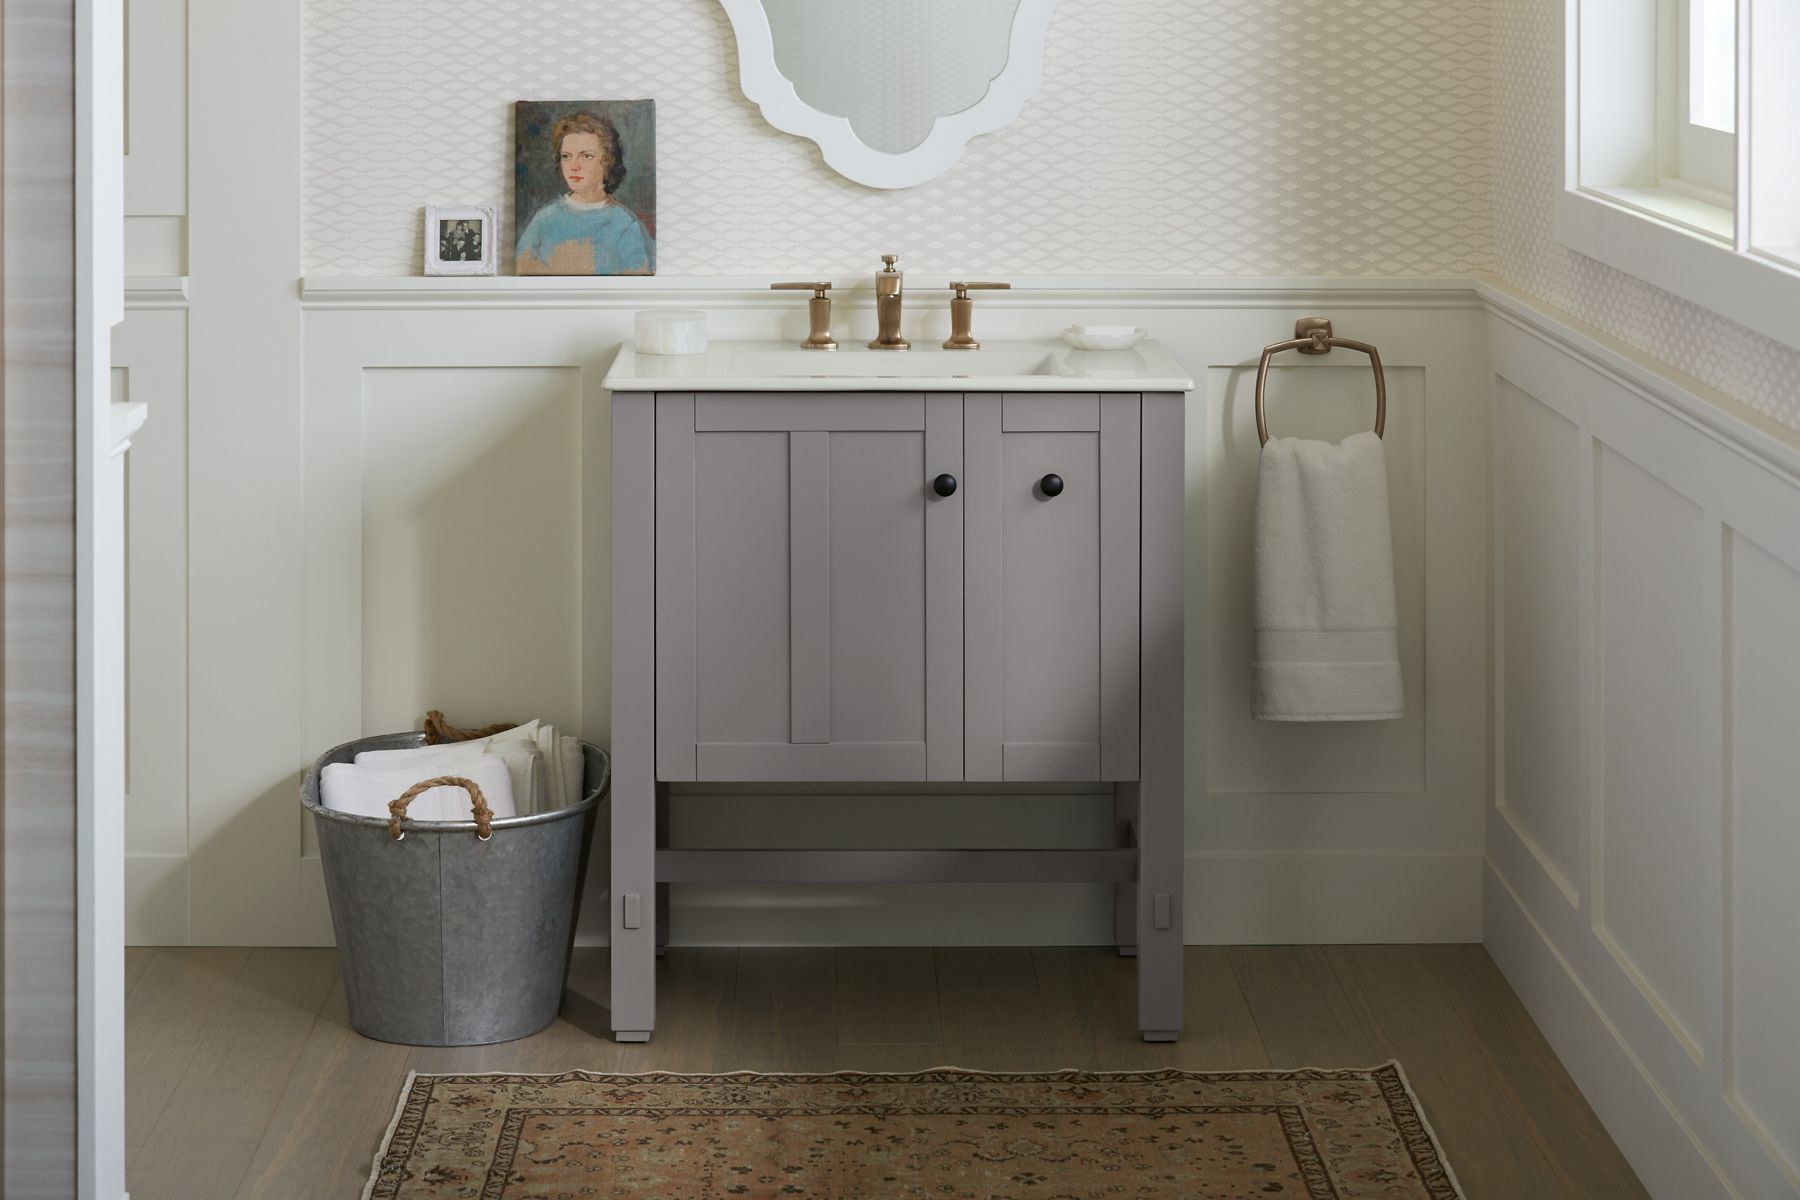 Captivating A Fresh Twist On Simple, Shaker Style Furniture Design, The Tresham  Collection Is Steeped In The Traditions Of Classic Americana While  Embracing A Modern ...